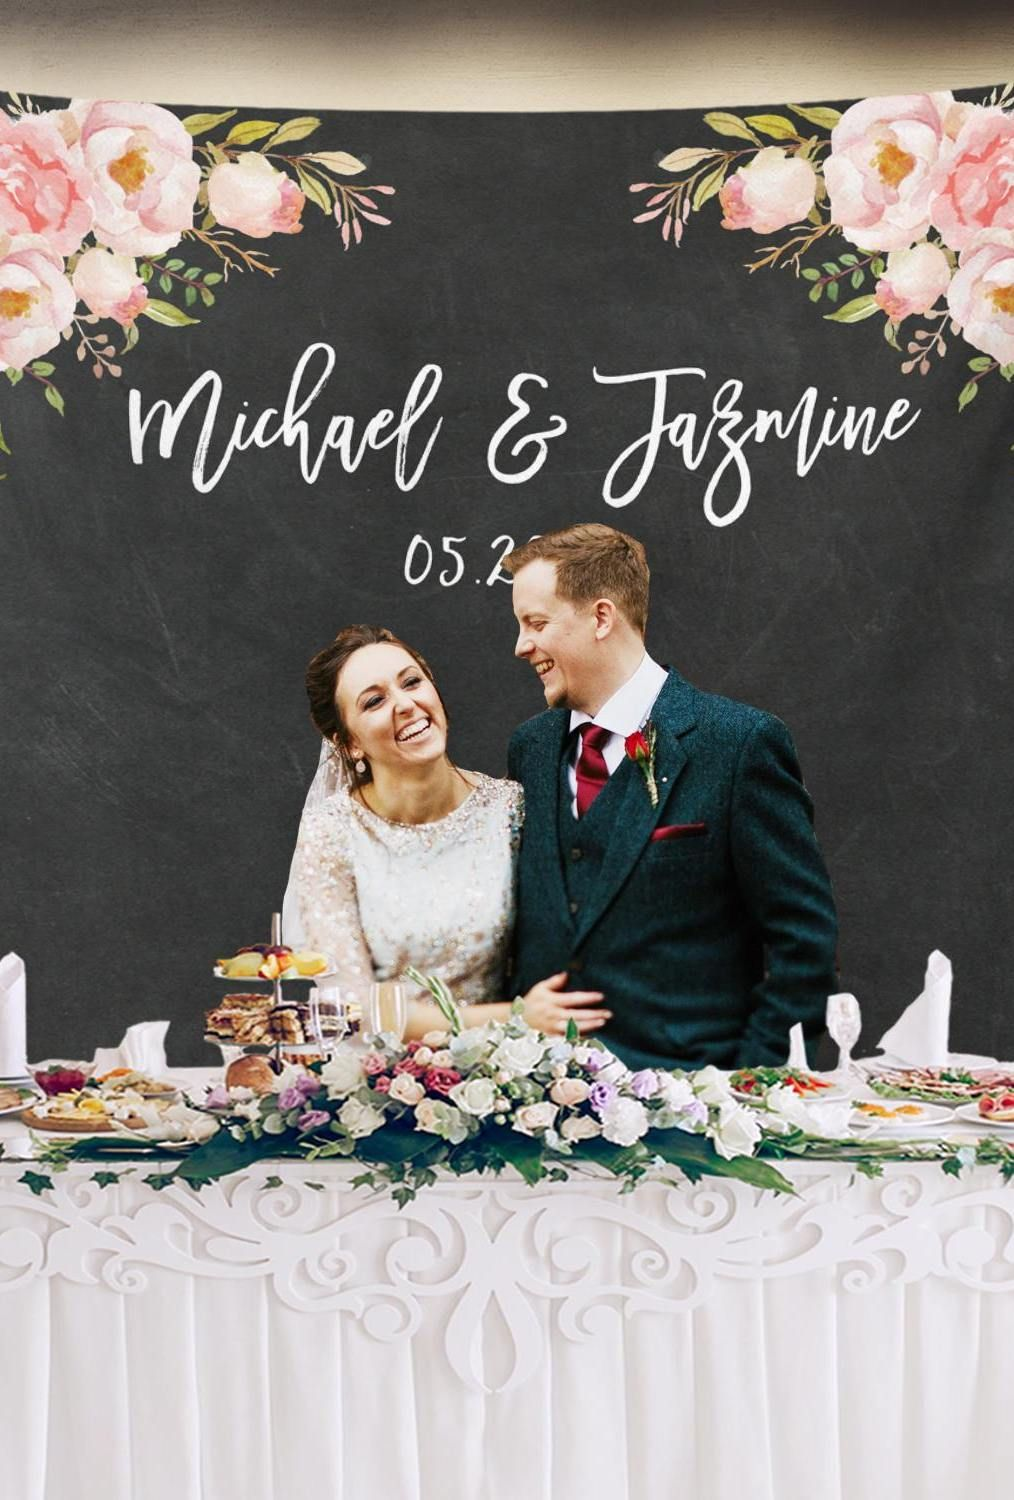 Rustic Wedding Banner Custom Backdrop Ideas Personalized Wedding Backdrop For Reception Sweetheart Table Backdrop Monogram Backdrop Party Decor Paper Party Supplies